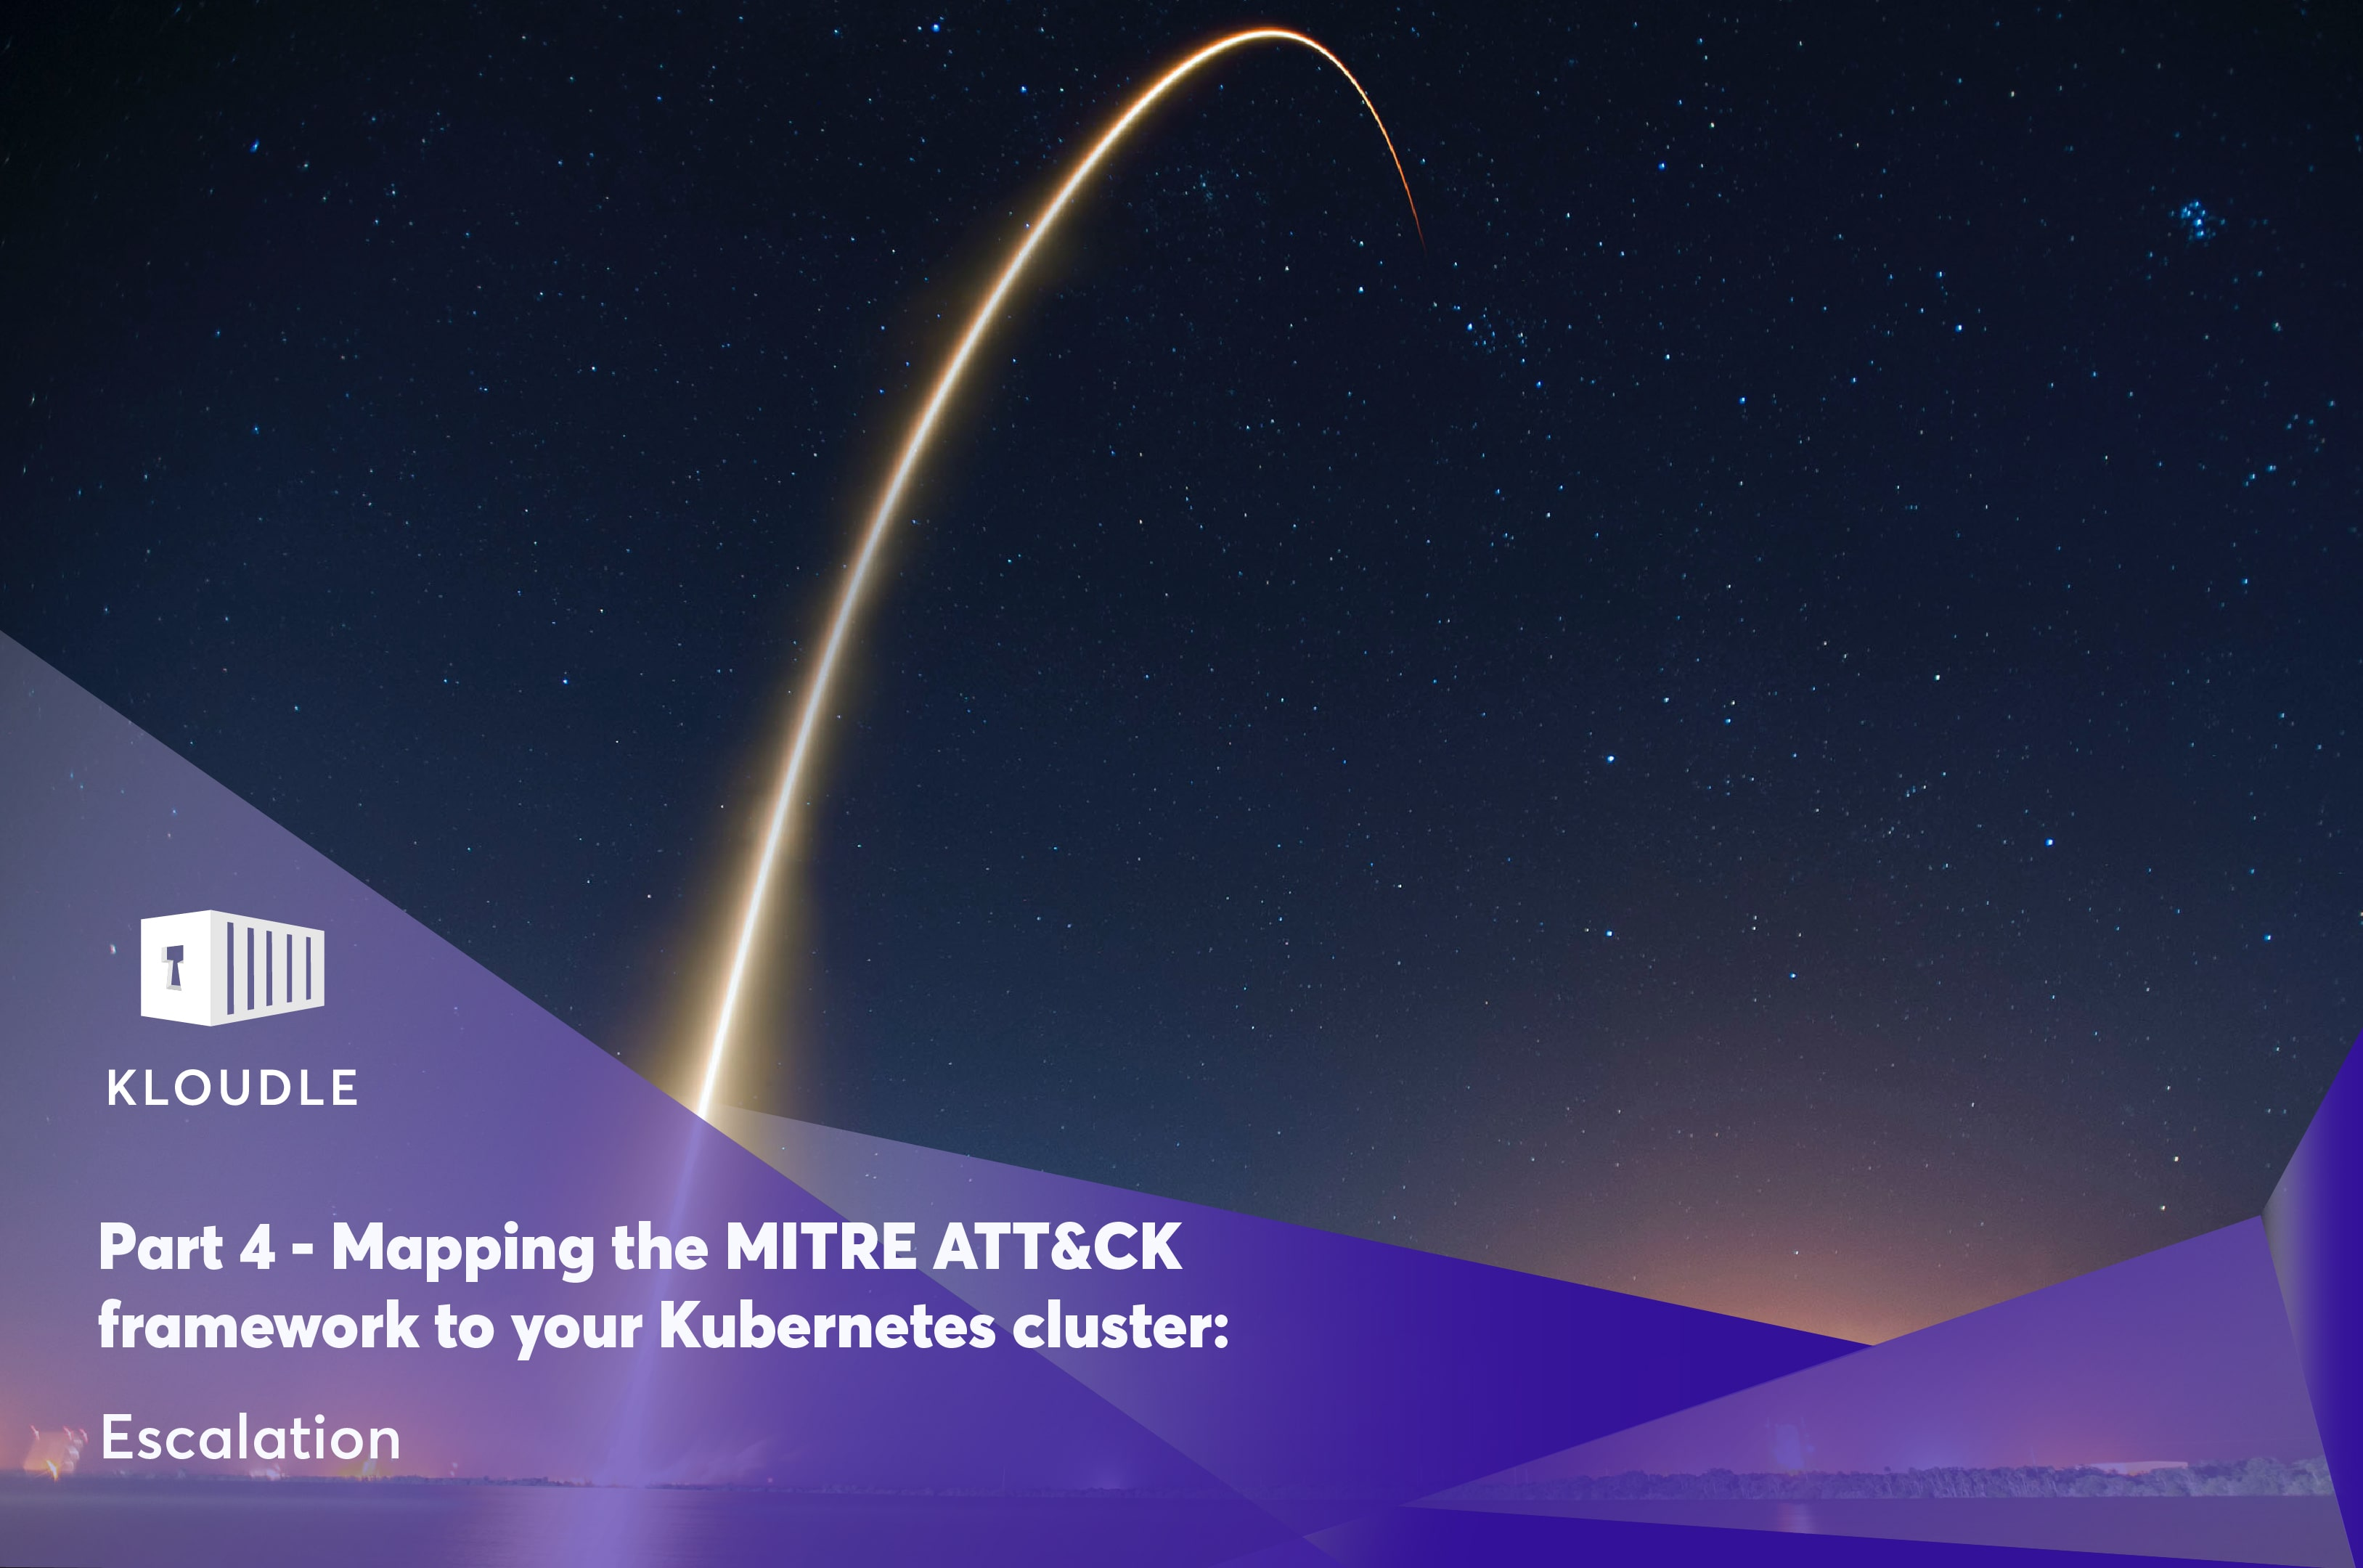 Part 4 - Mapping the MITRE ATT&CK framework to your Kubernetes cluster: Escalation